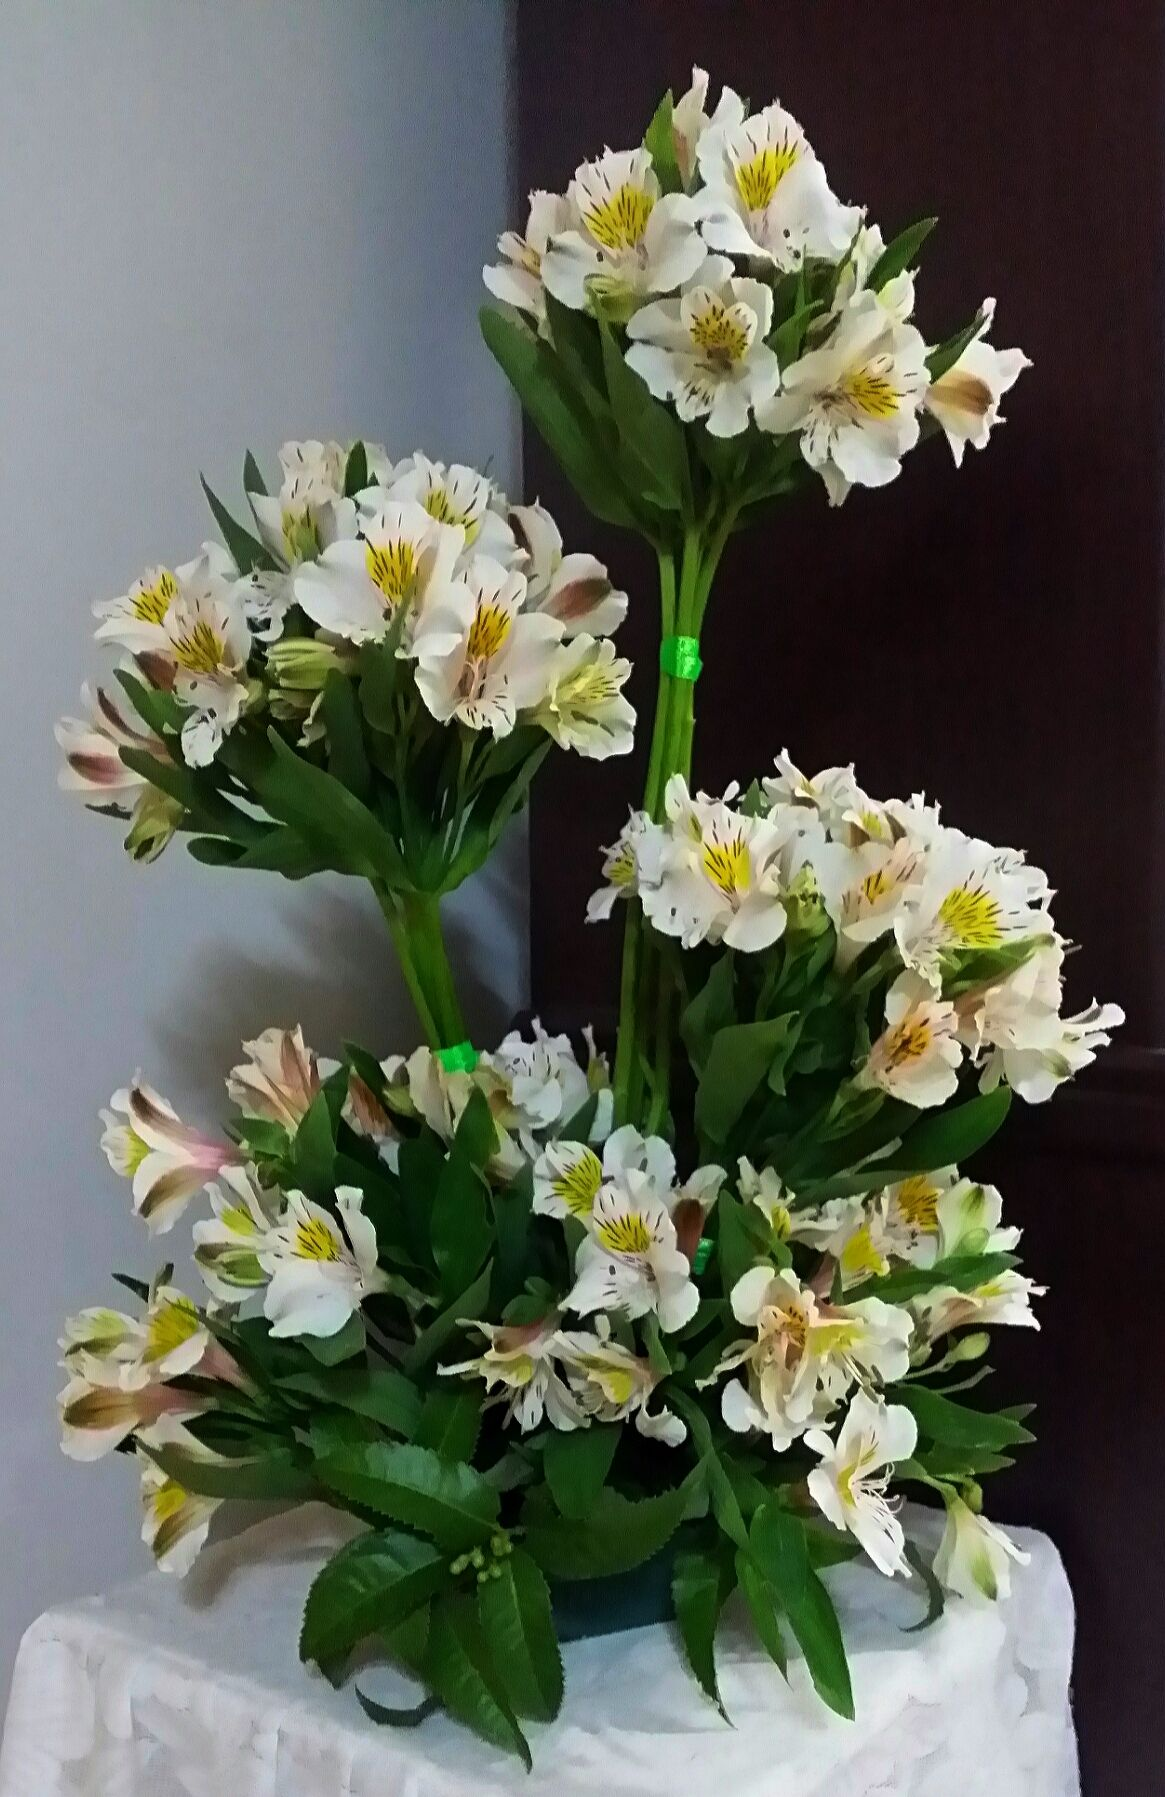 Alstromeria bunched are an inexpensive flower that looks like a